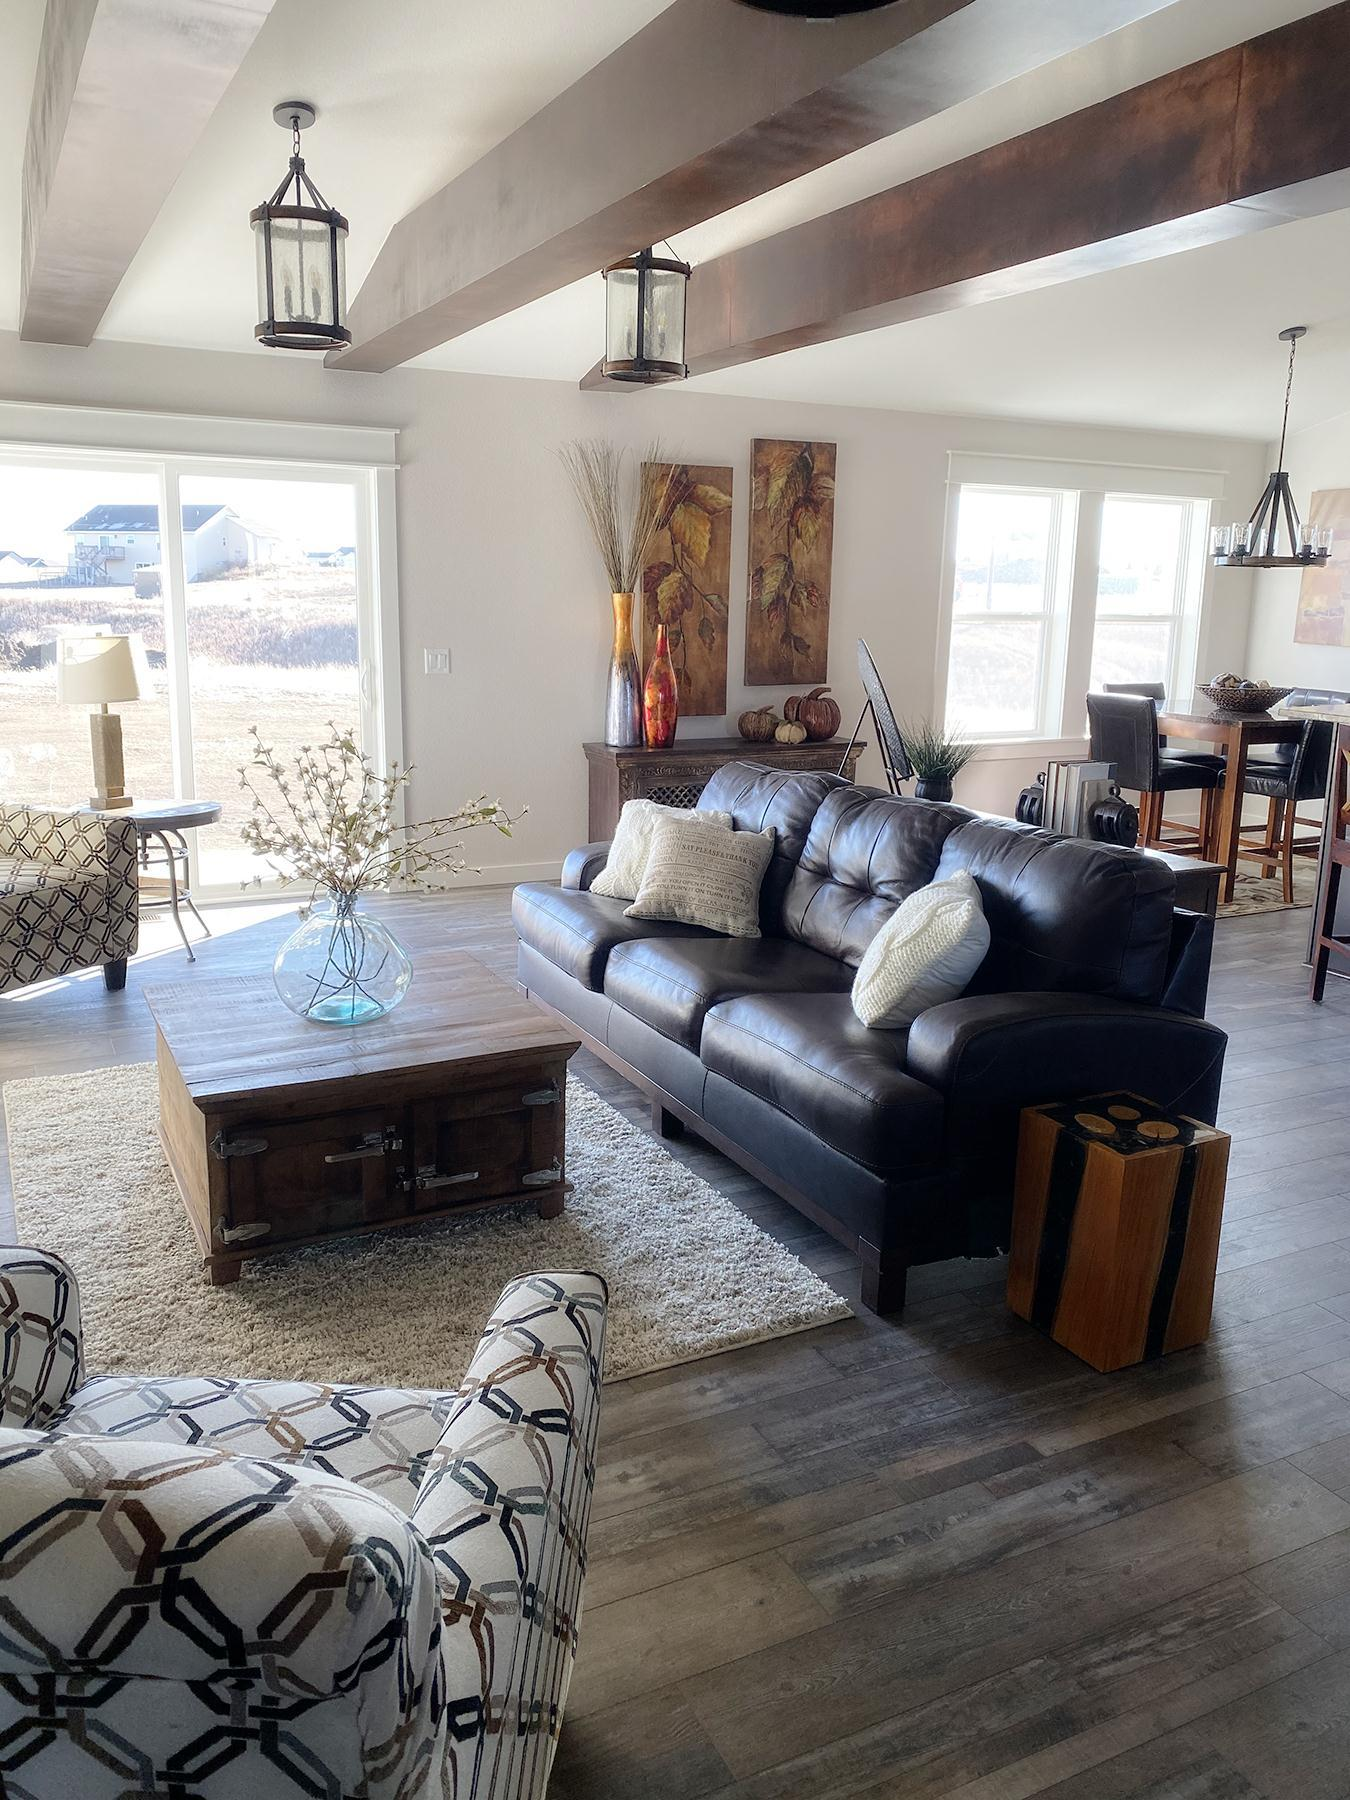 Living Area featured in the McKinley Ranch By Windsong Custom Homes in Billings, ND